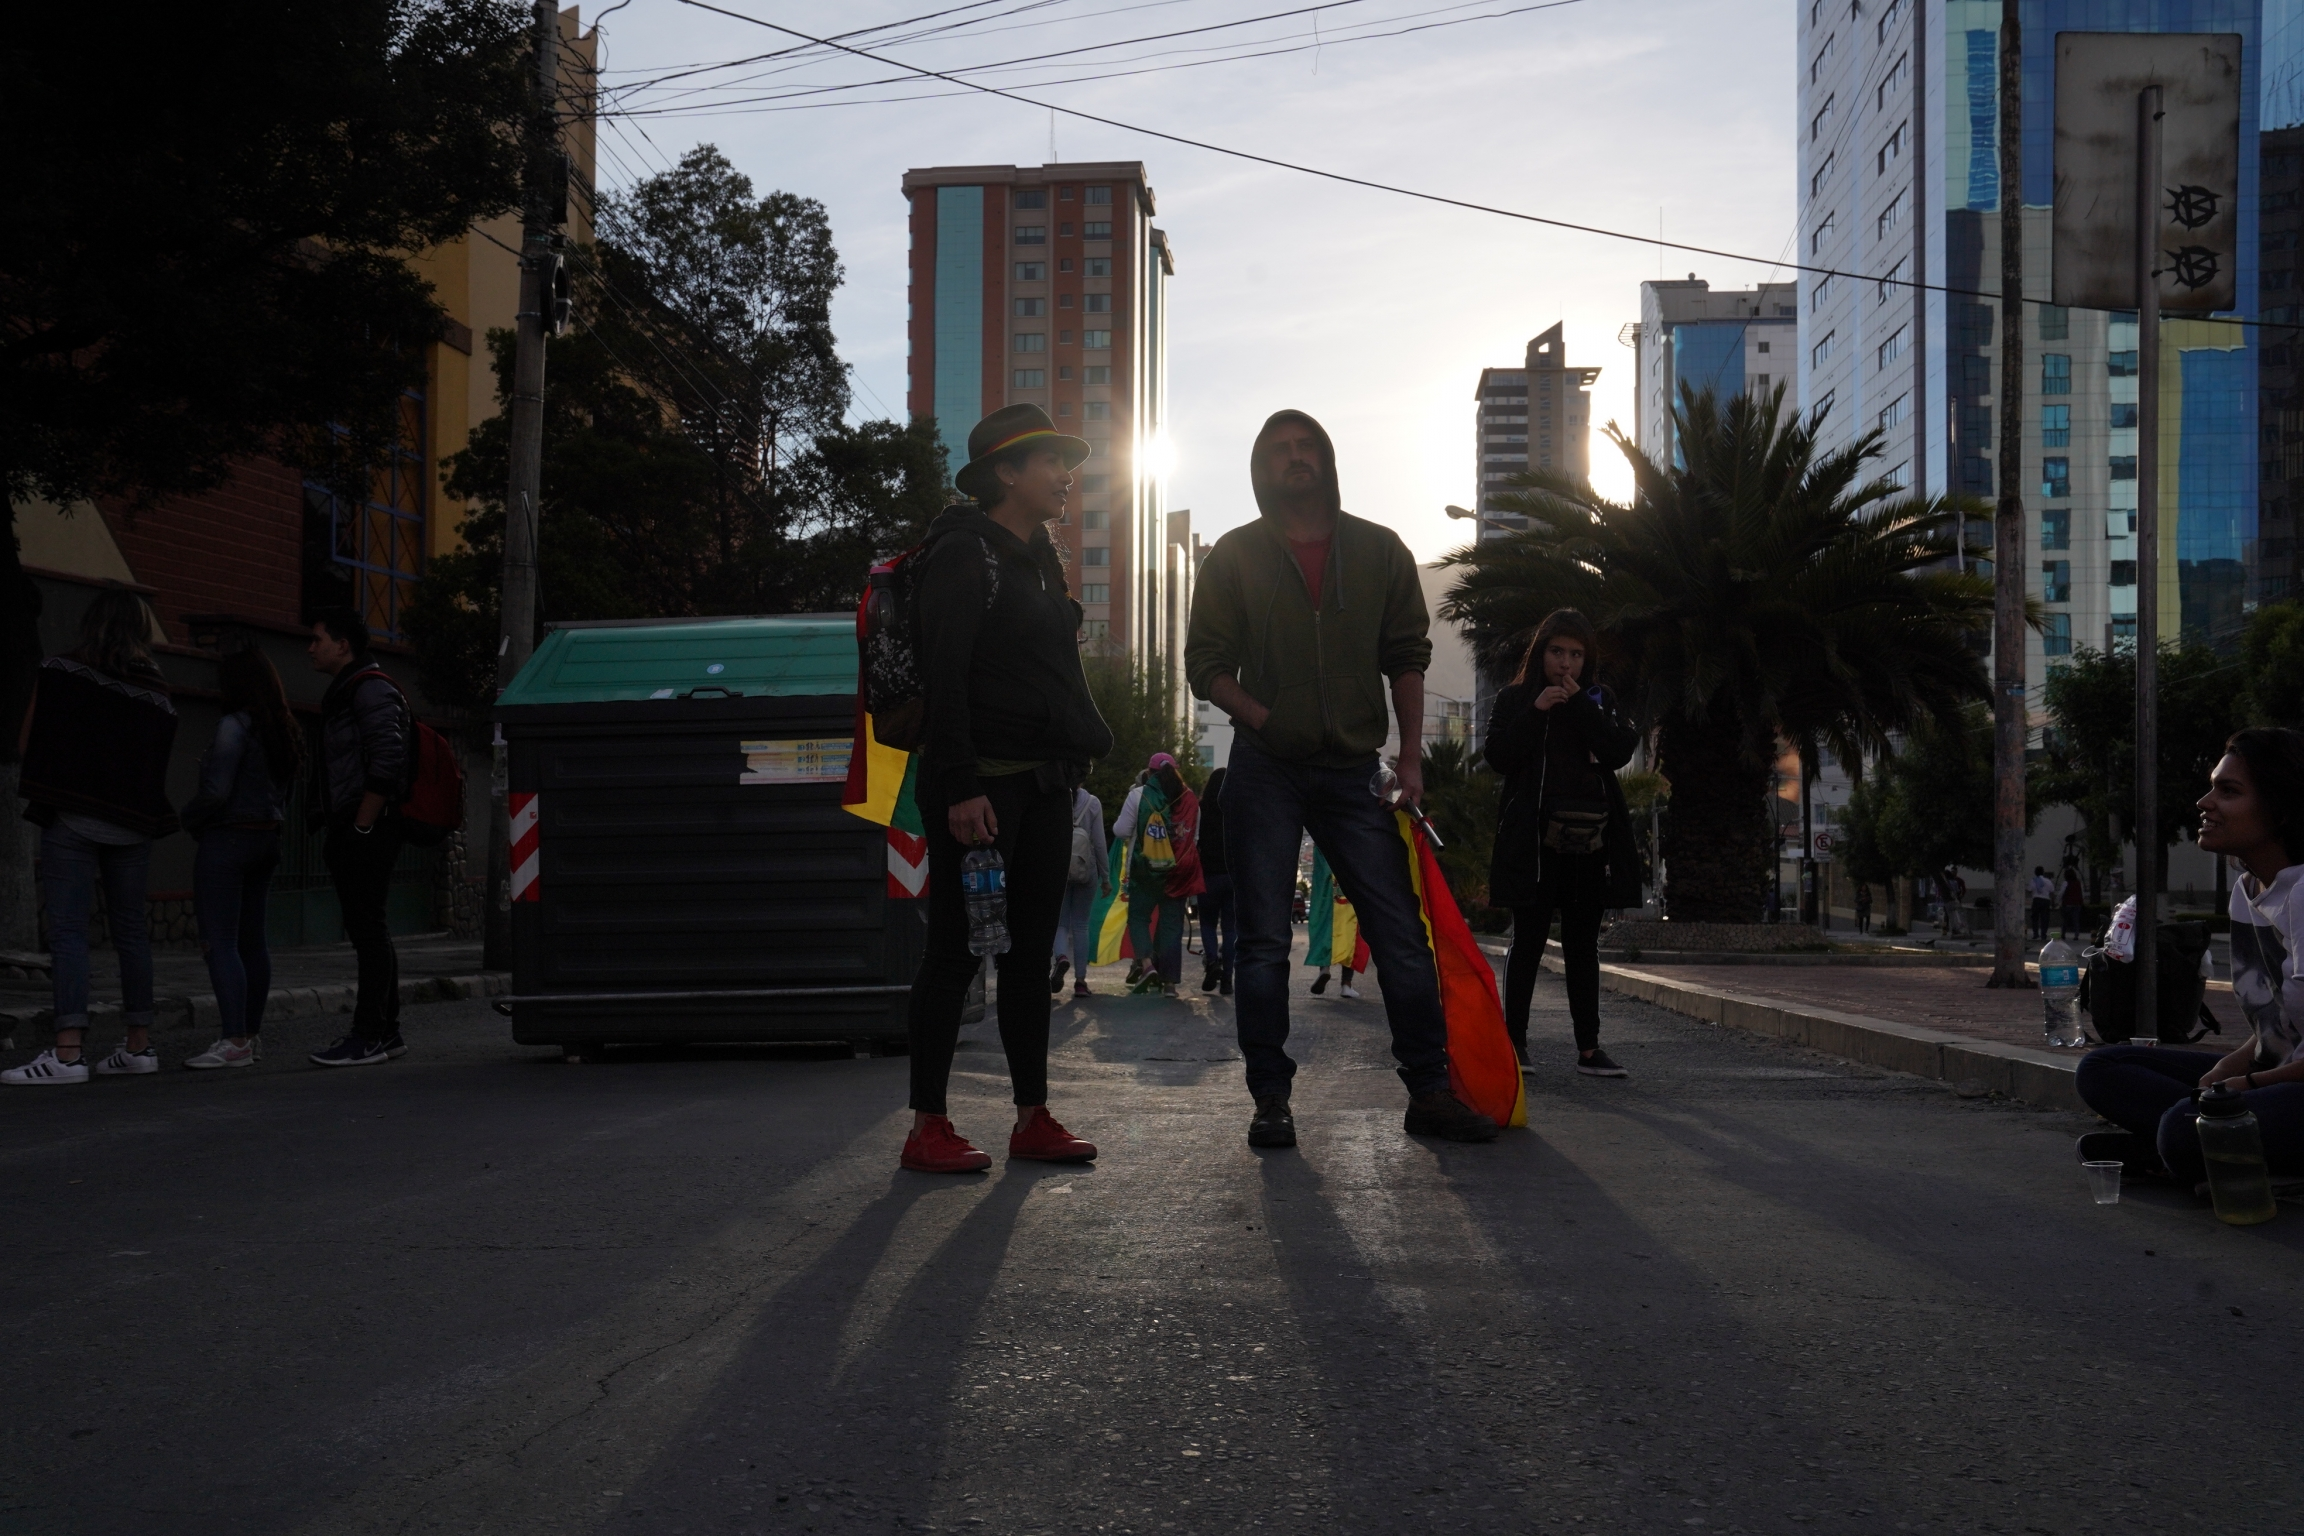 A group of young men blocks a road in Bolivia's capital city to protest the reelection of Bolivian President Evo Morales to his fourth term. Protesters claim he is leading Bolivia toward dictatorship.